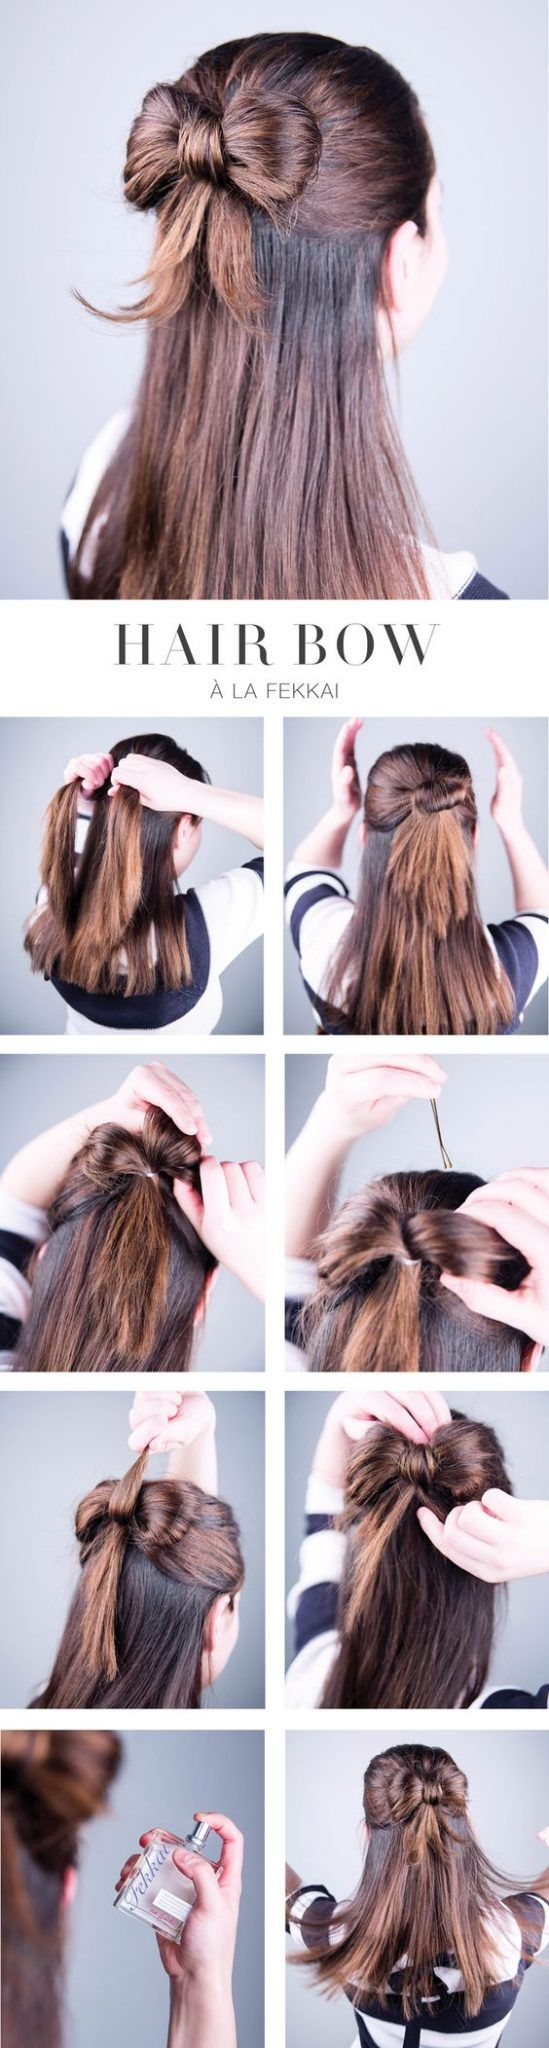 Easy To Do Hairstyles Classy 347 Best Hair Tutorials & Ideas Images On Pinterest  Hairstyle